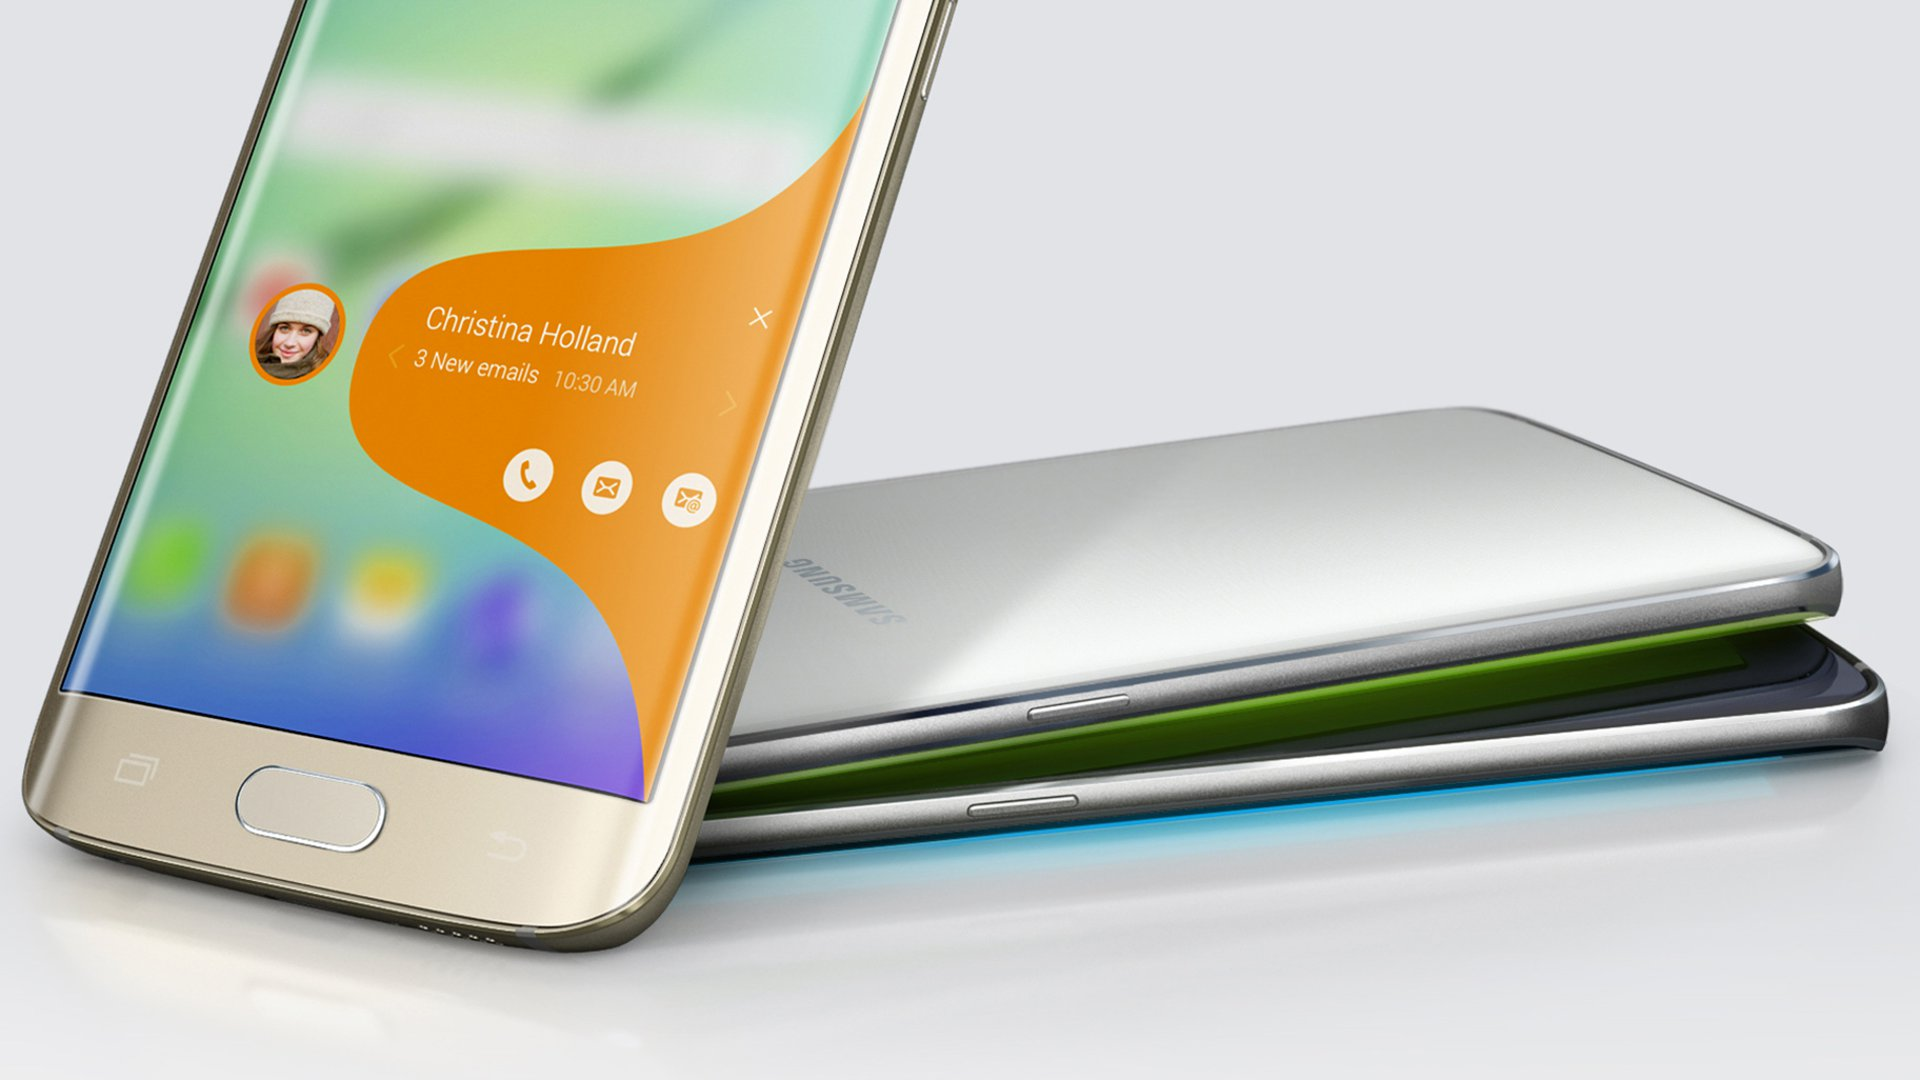 How To Take Screenshot On Samsung Galaxy S6 / Galaxy S6 Edge